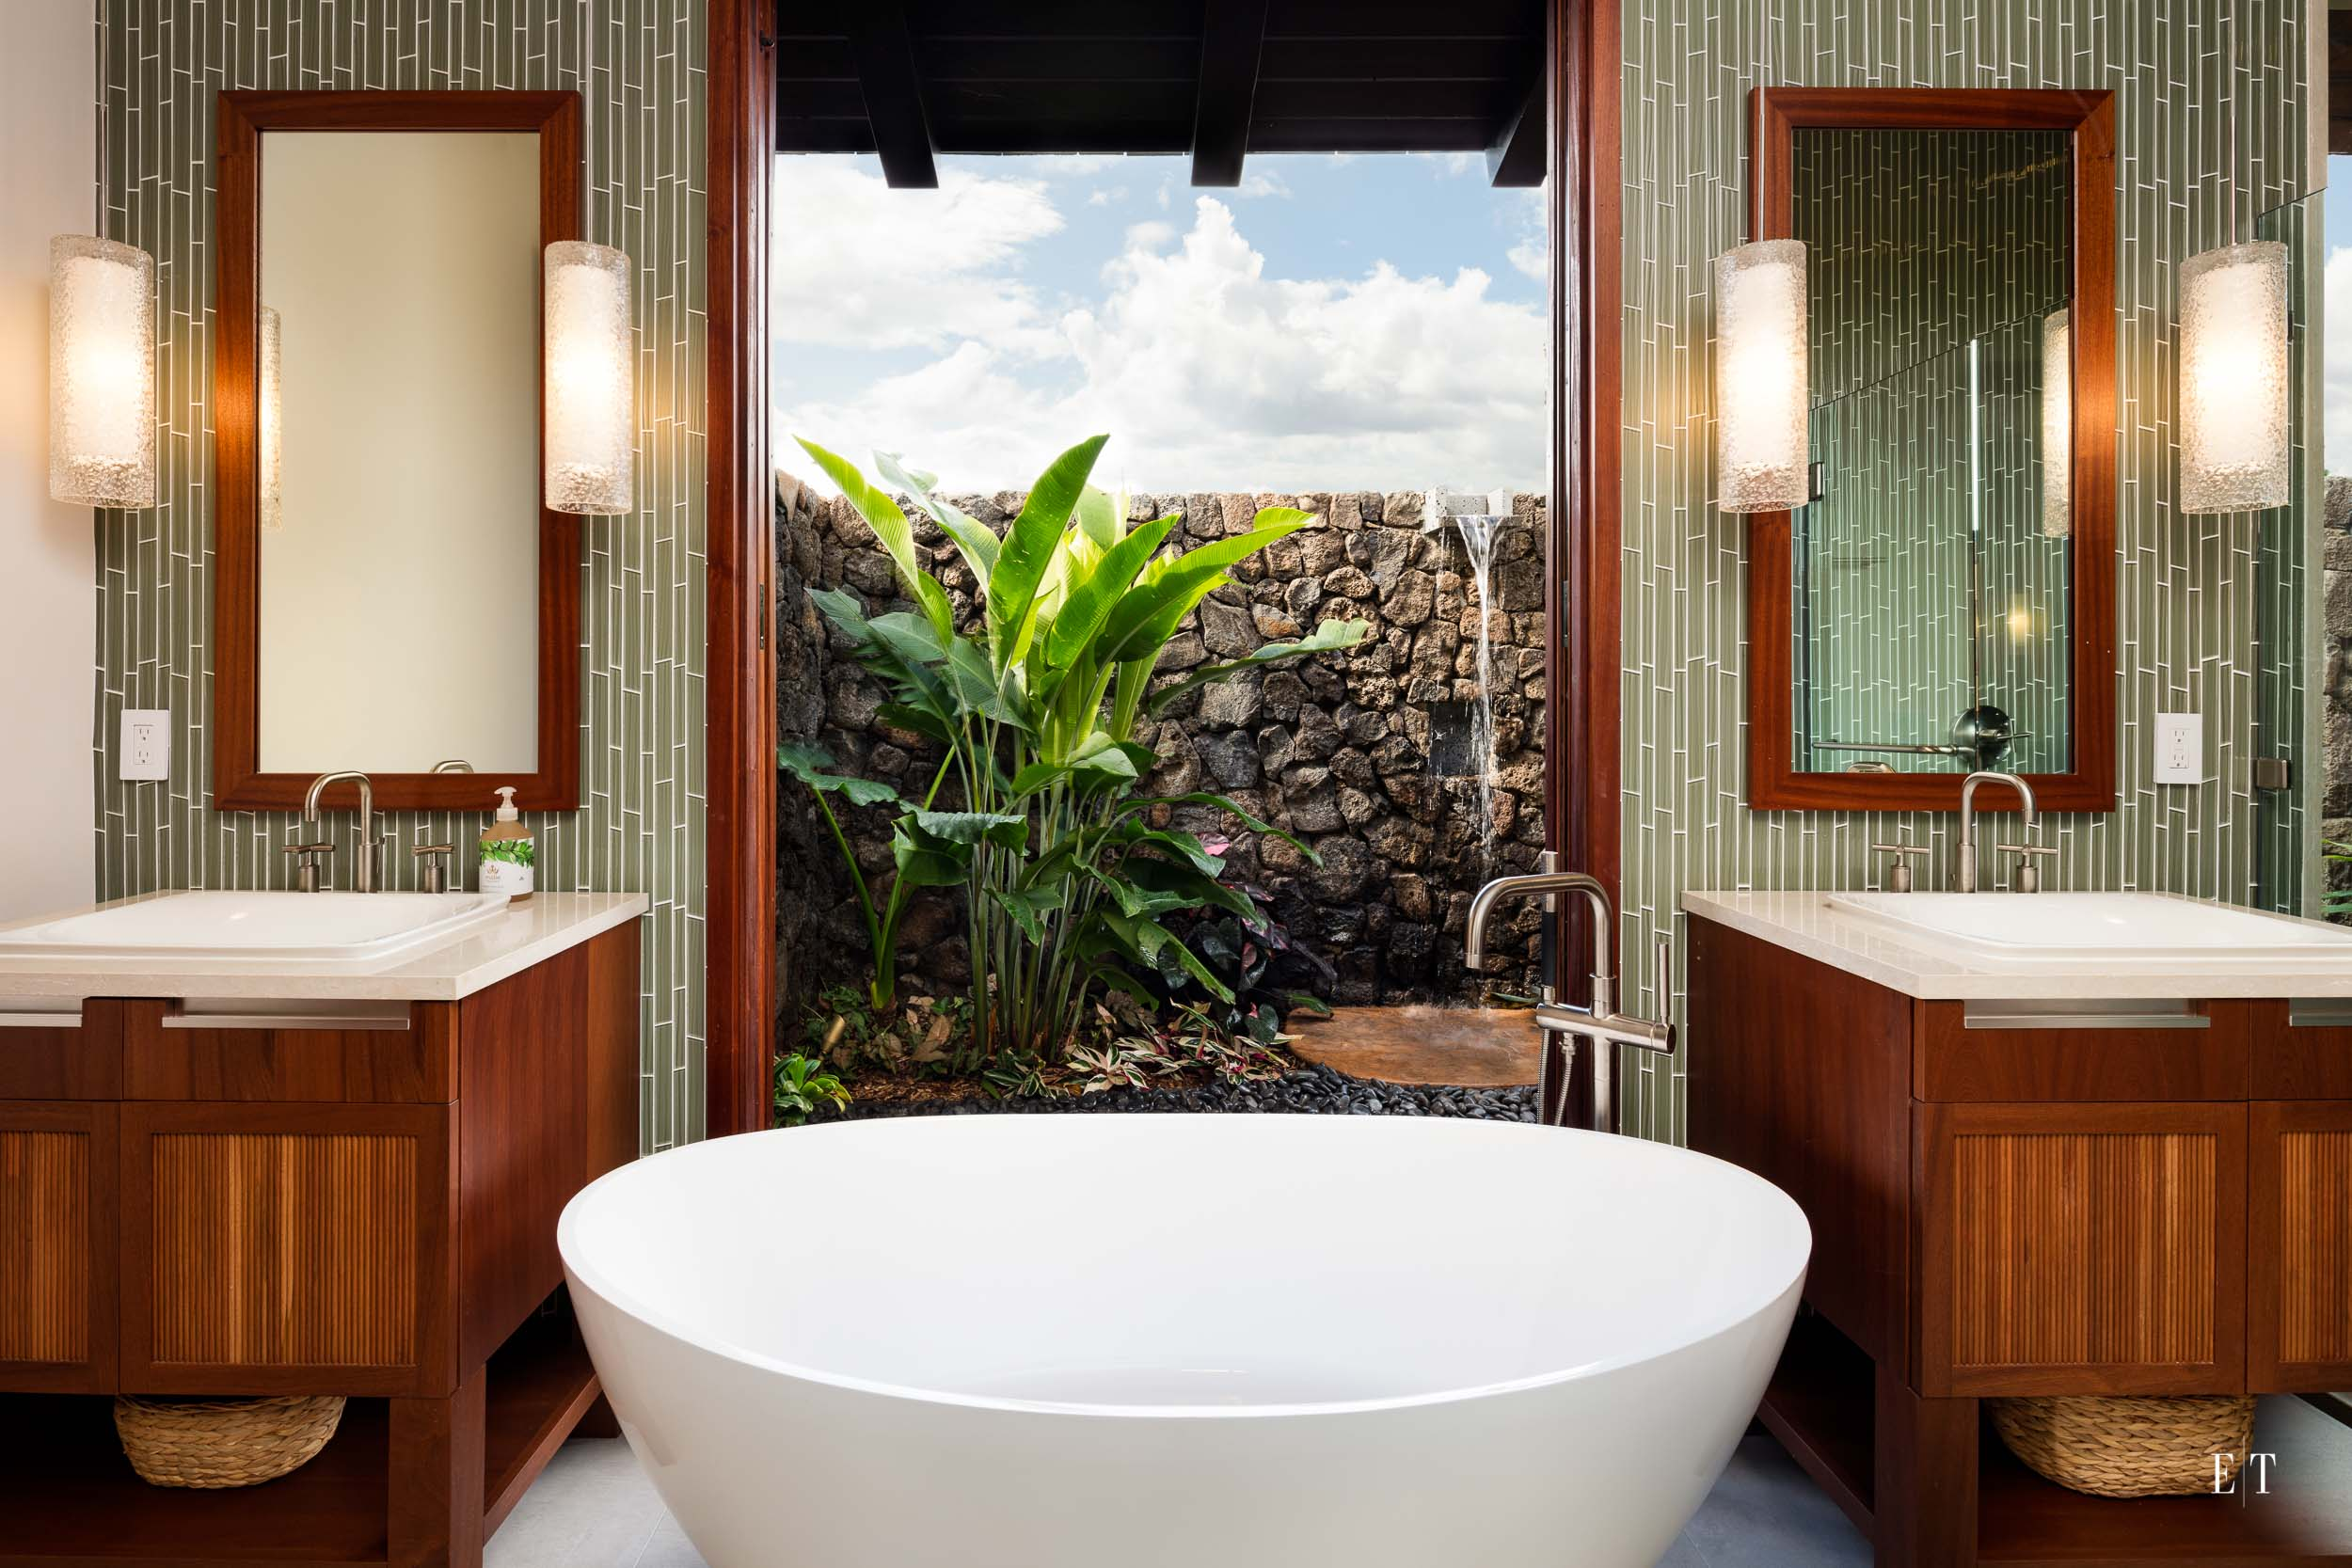 This tub has a view of the outdoor garden and shower